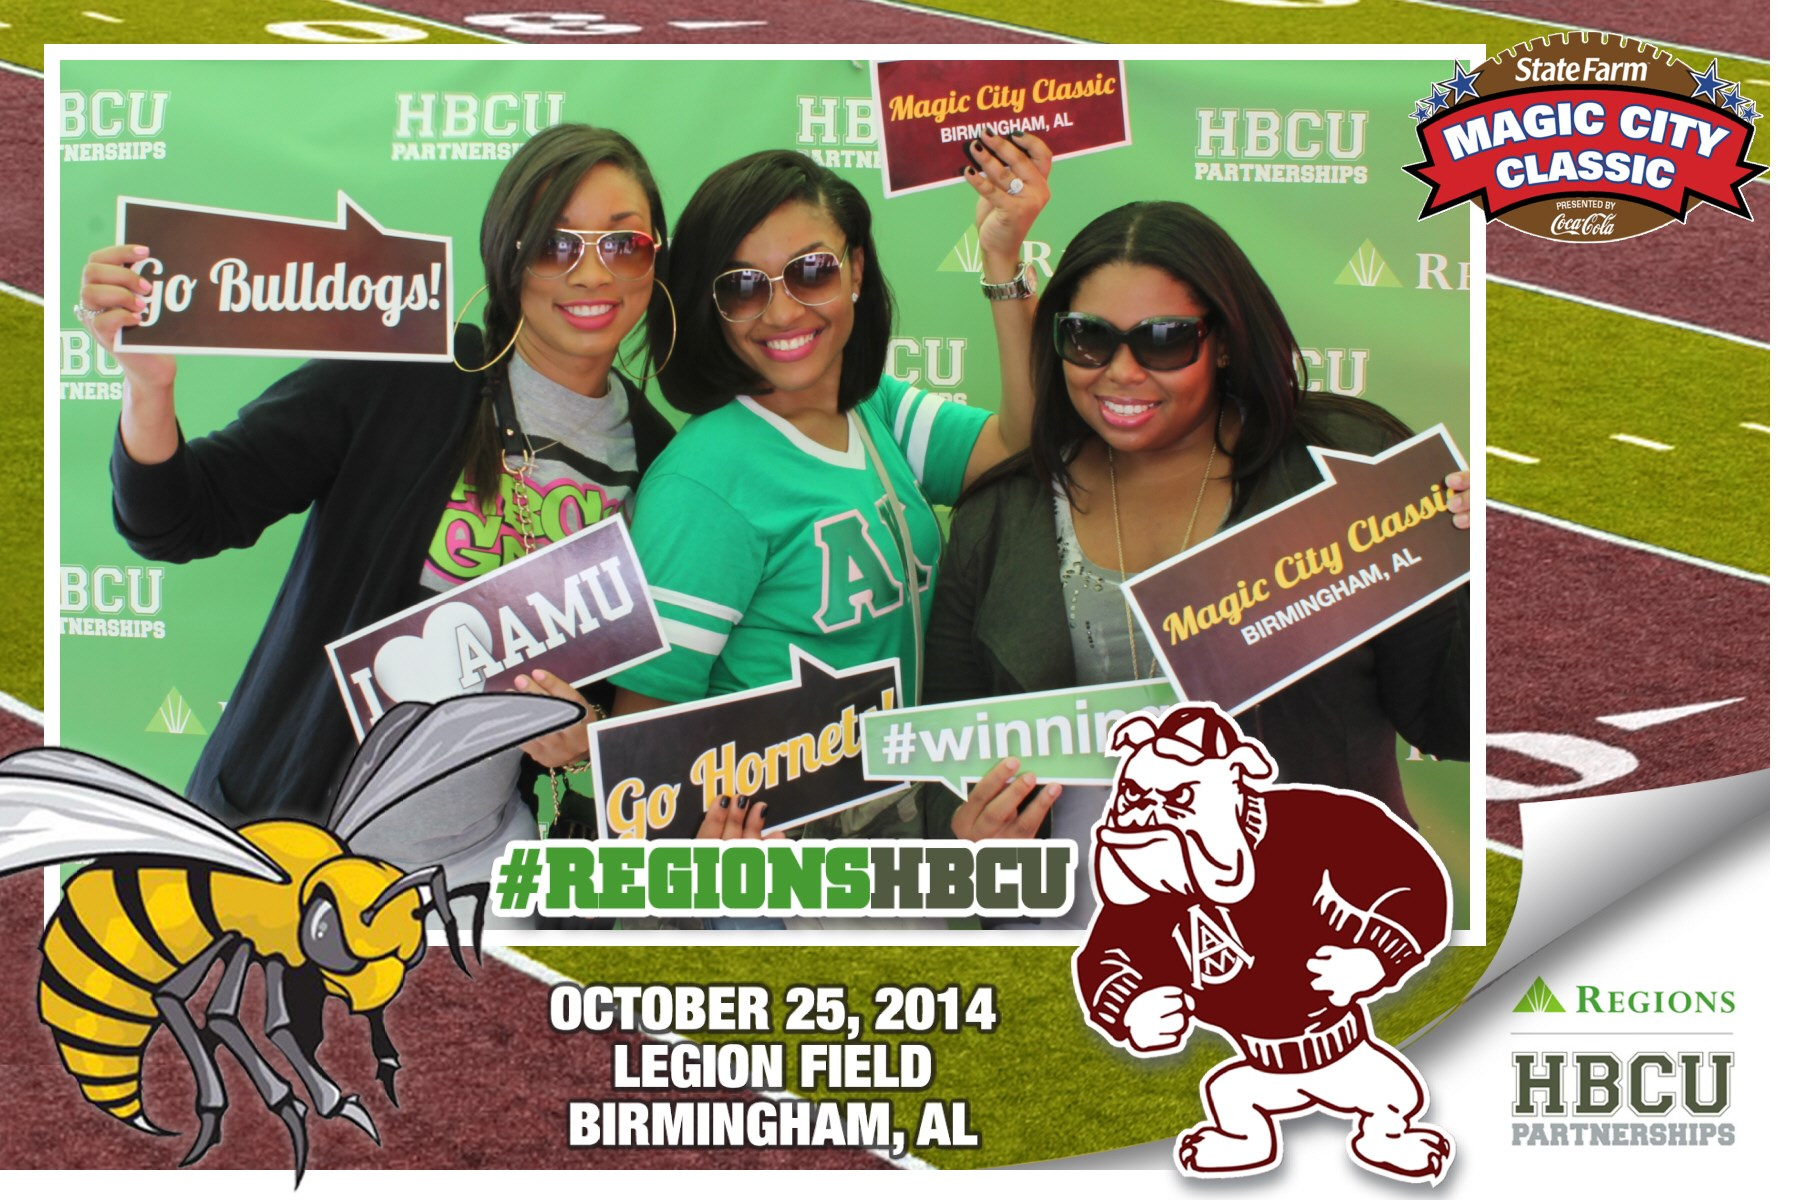 Regions HBCU Magic City Classic